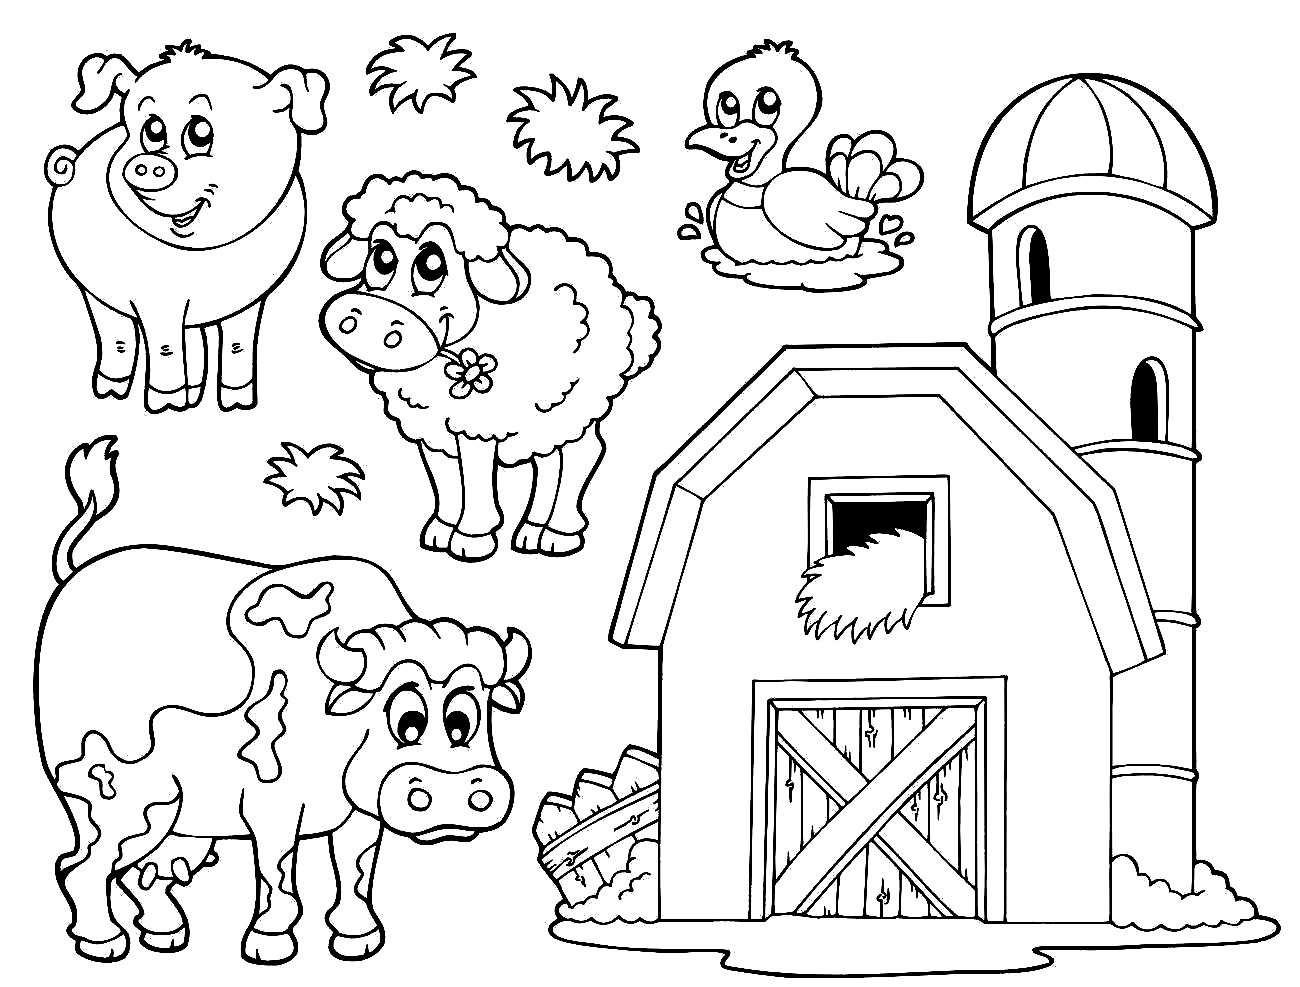 ranch coloring pages farm coloring pages free printable farm coloring pages coloring ranch pages